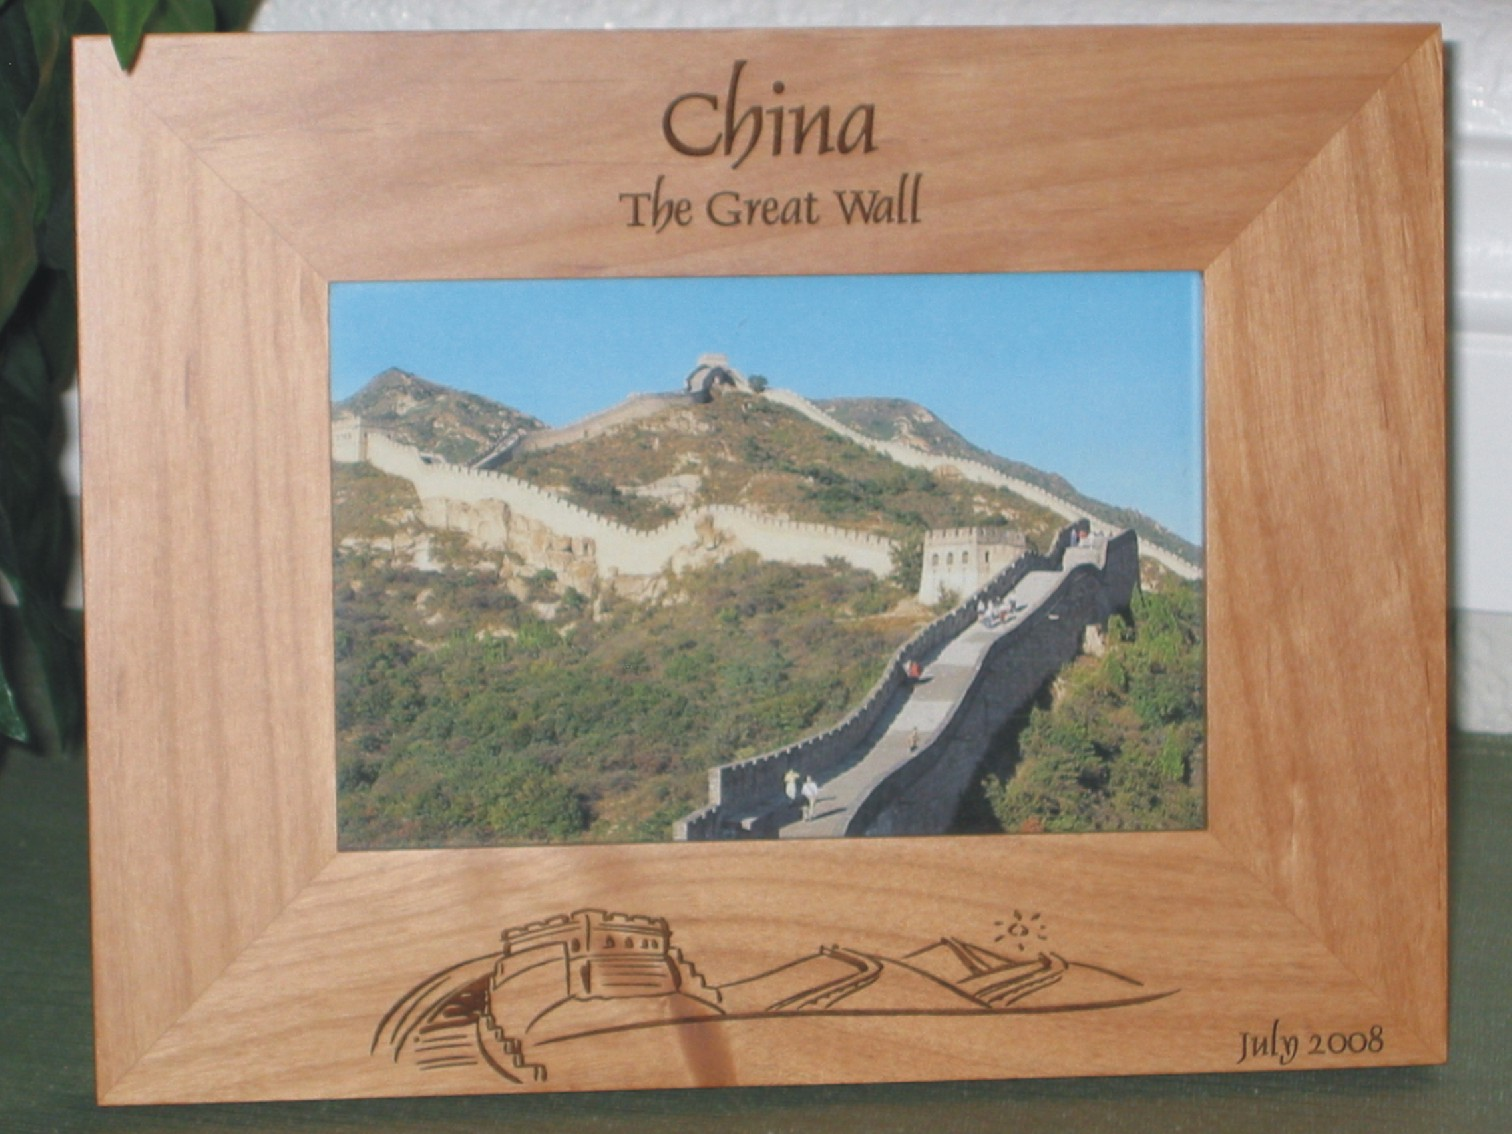 Great wall of china picture frame personalized souvenir frame great wall of china picture frame personalized souvenir frame laser engraved great wall of china jeuxipadfo Image collections